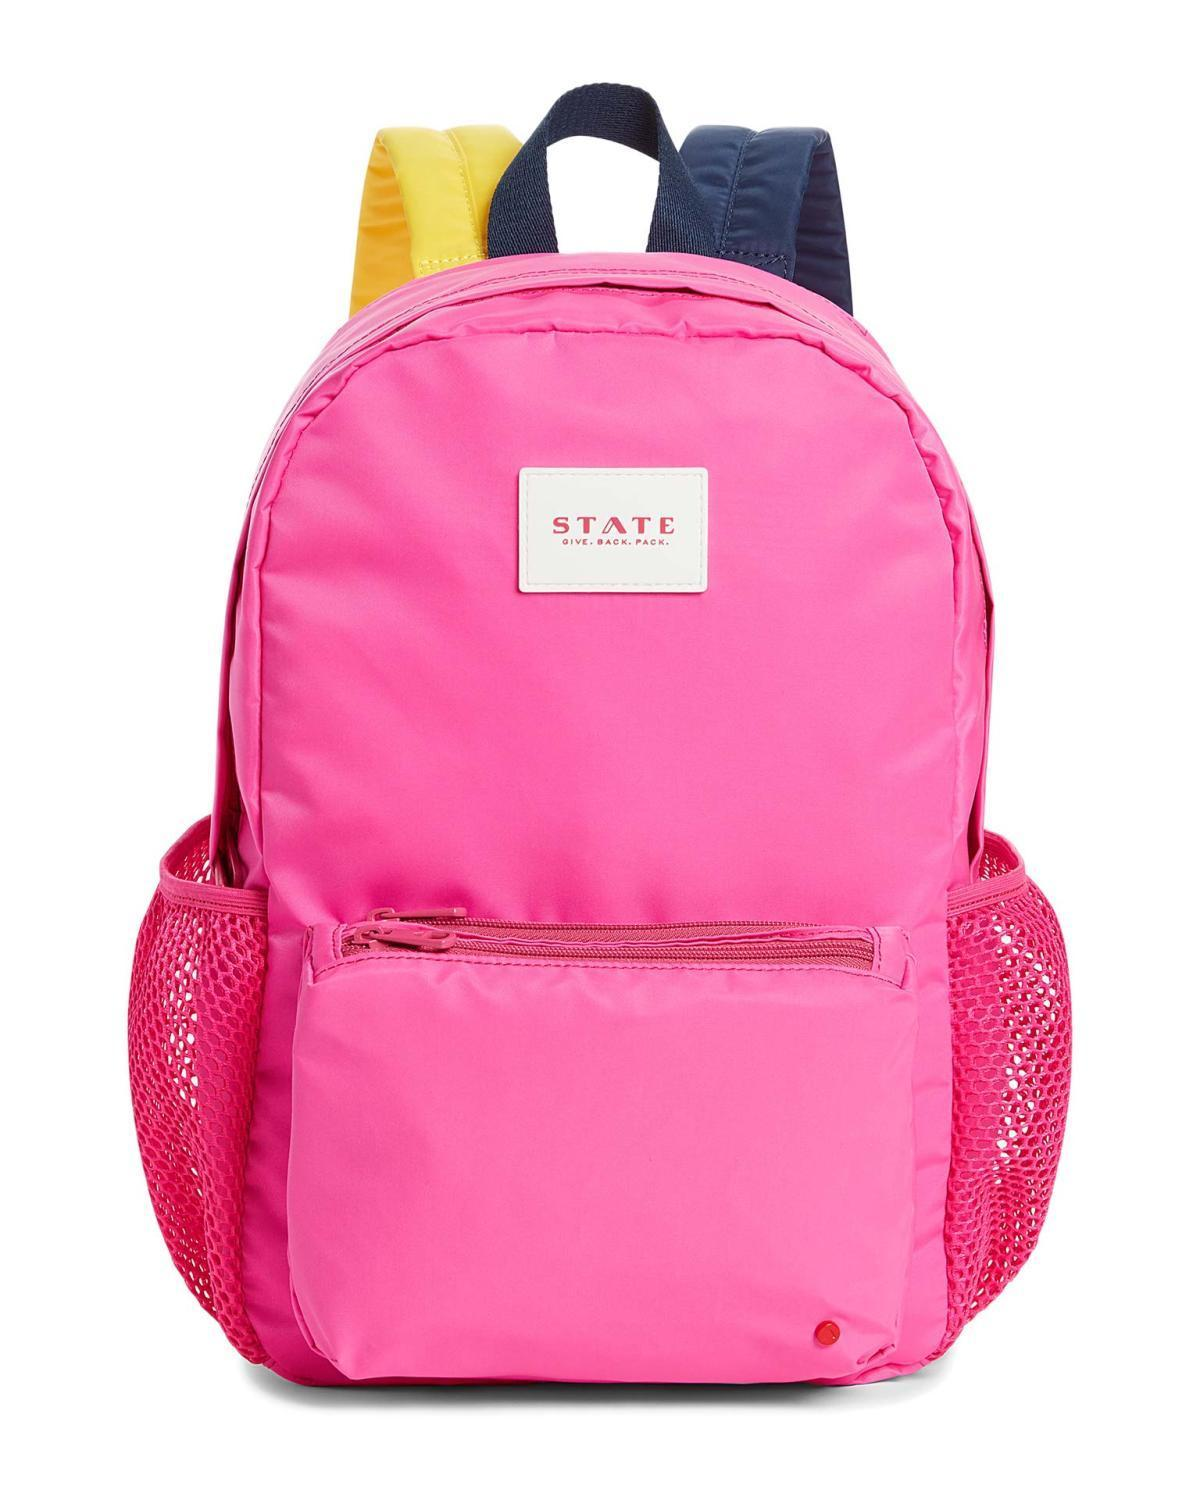 Little state bags accessories lawrence backpack in pink